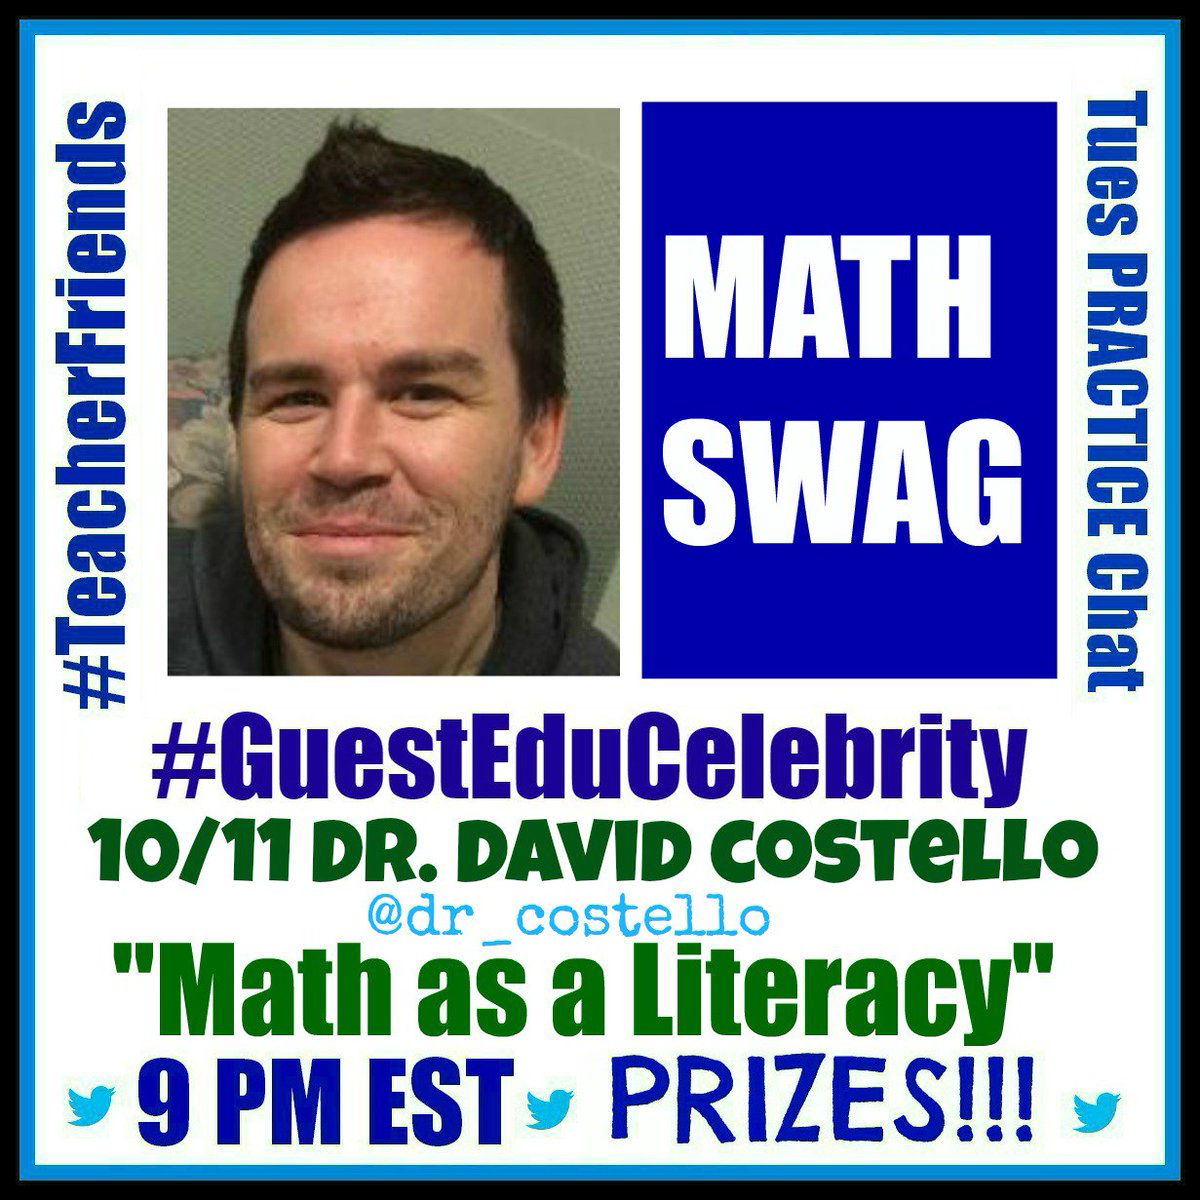 """#TeacherFriends Our topic 10/11 is """"Math as a Literacy"""" w @dr_costello Please Retweet. Bring tweeps. https://t.co/Xy1ERefgmF"""